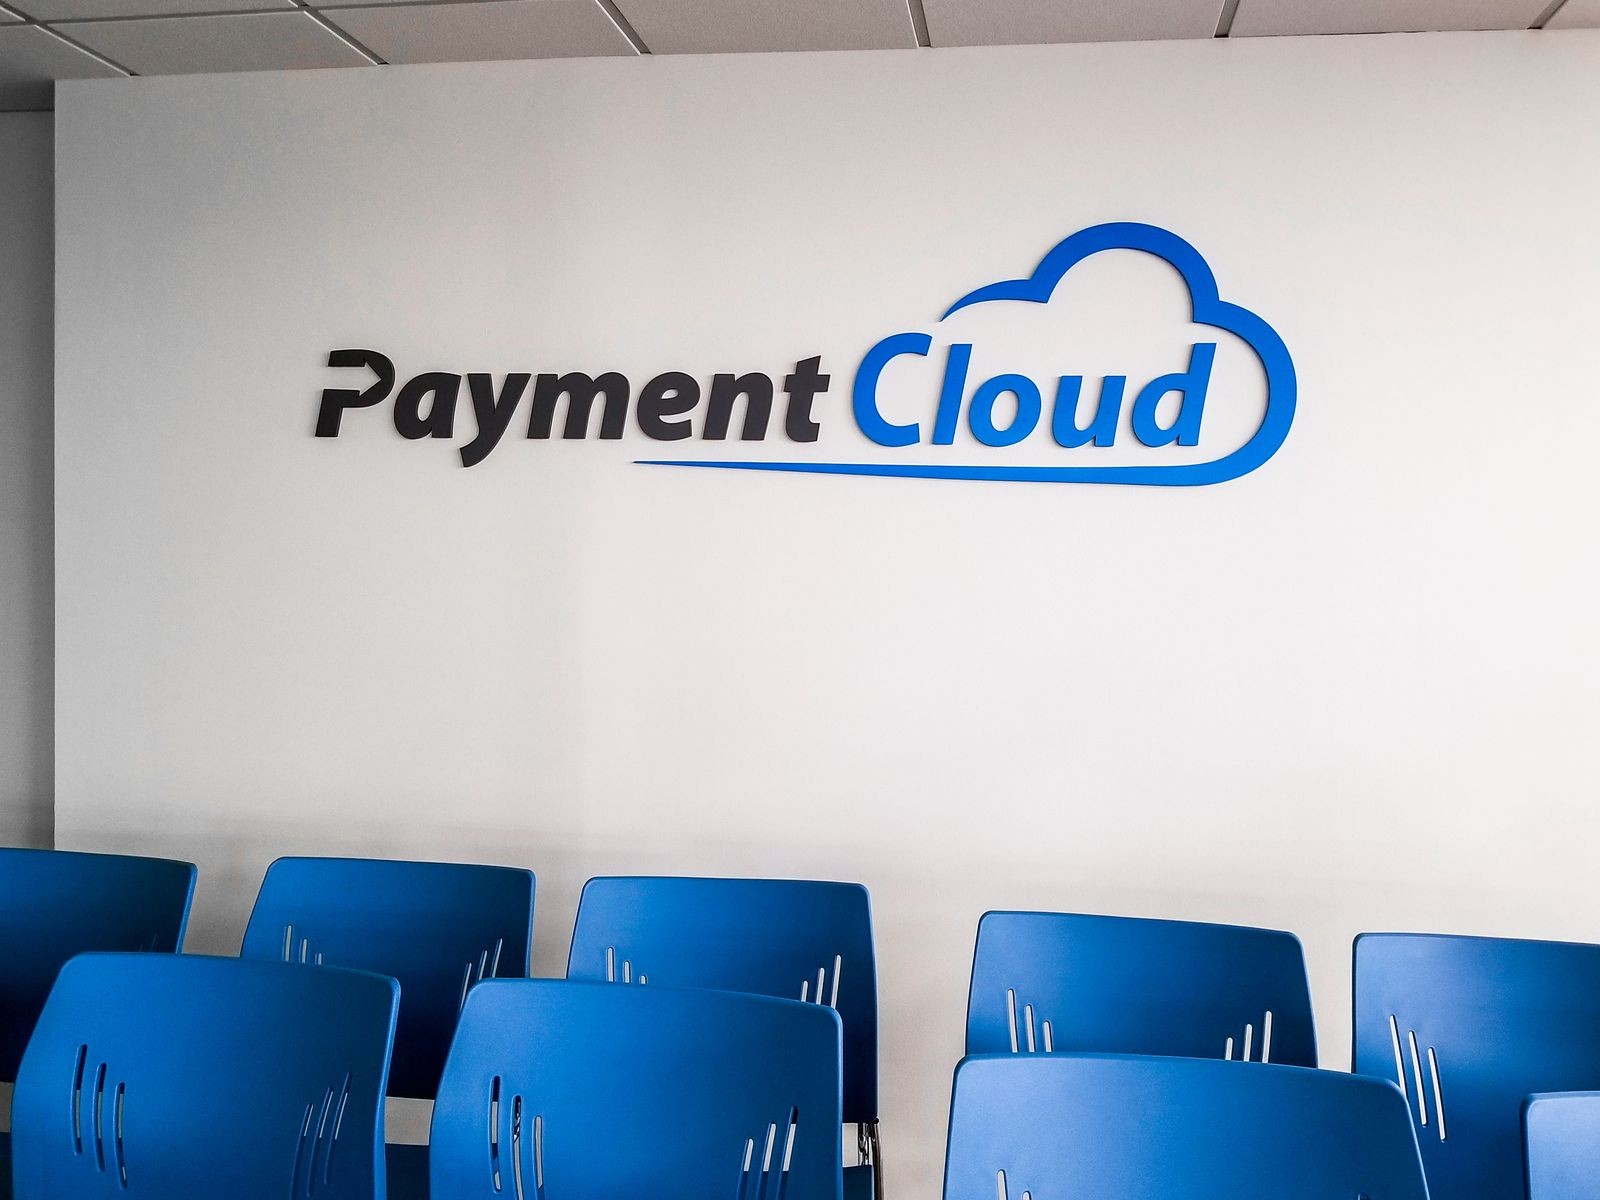 Payment Cloud interior dimensional signage with the company name and logo custom-made of acrylic for indoor branding